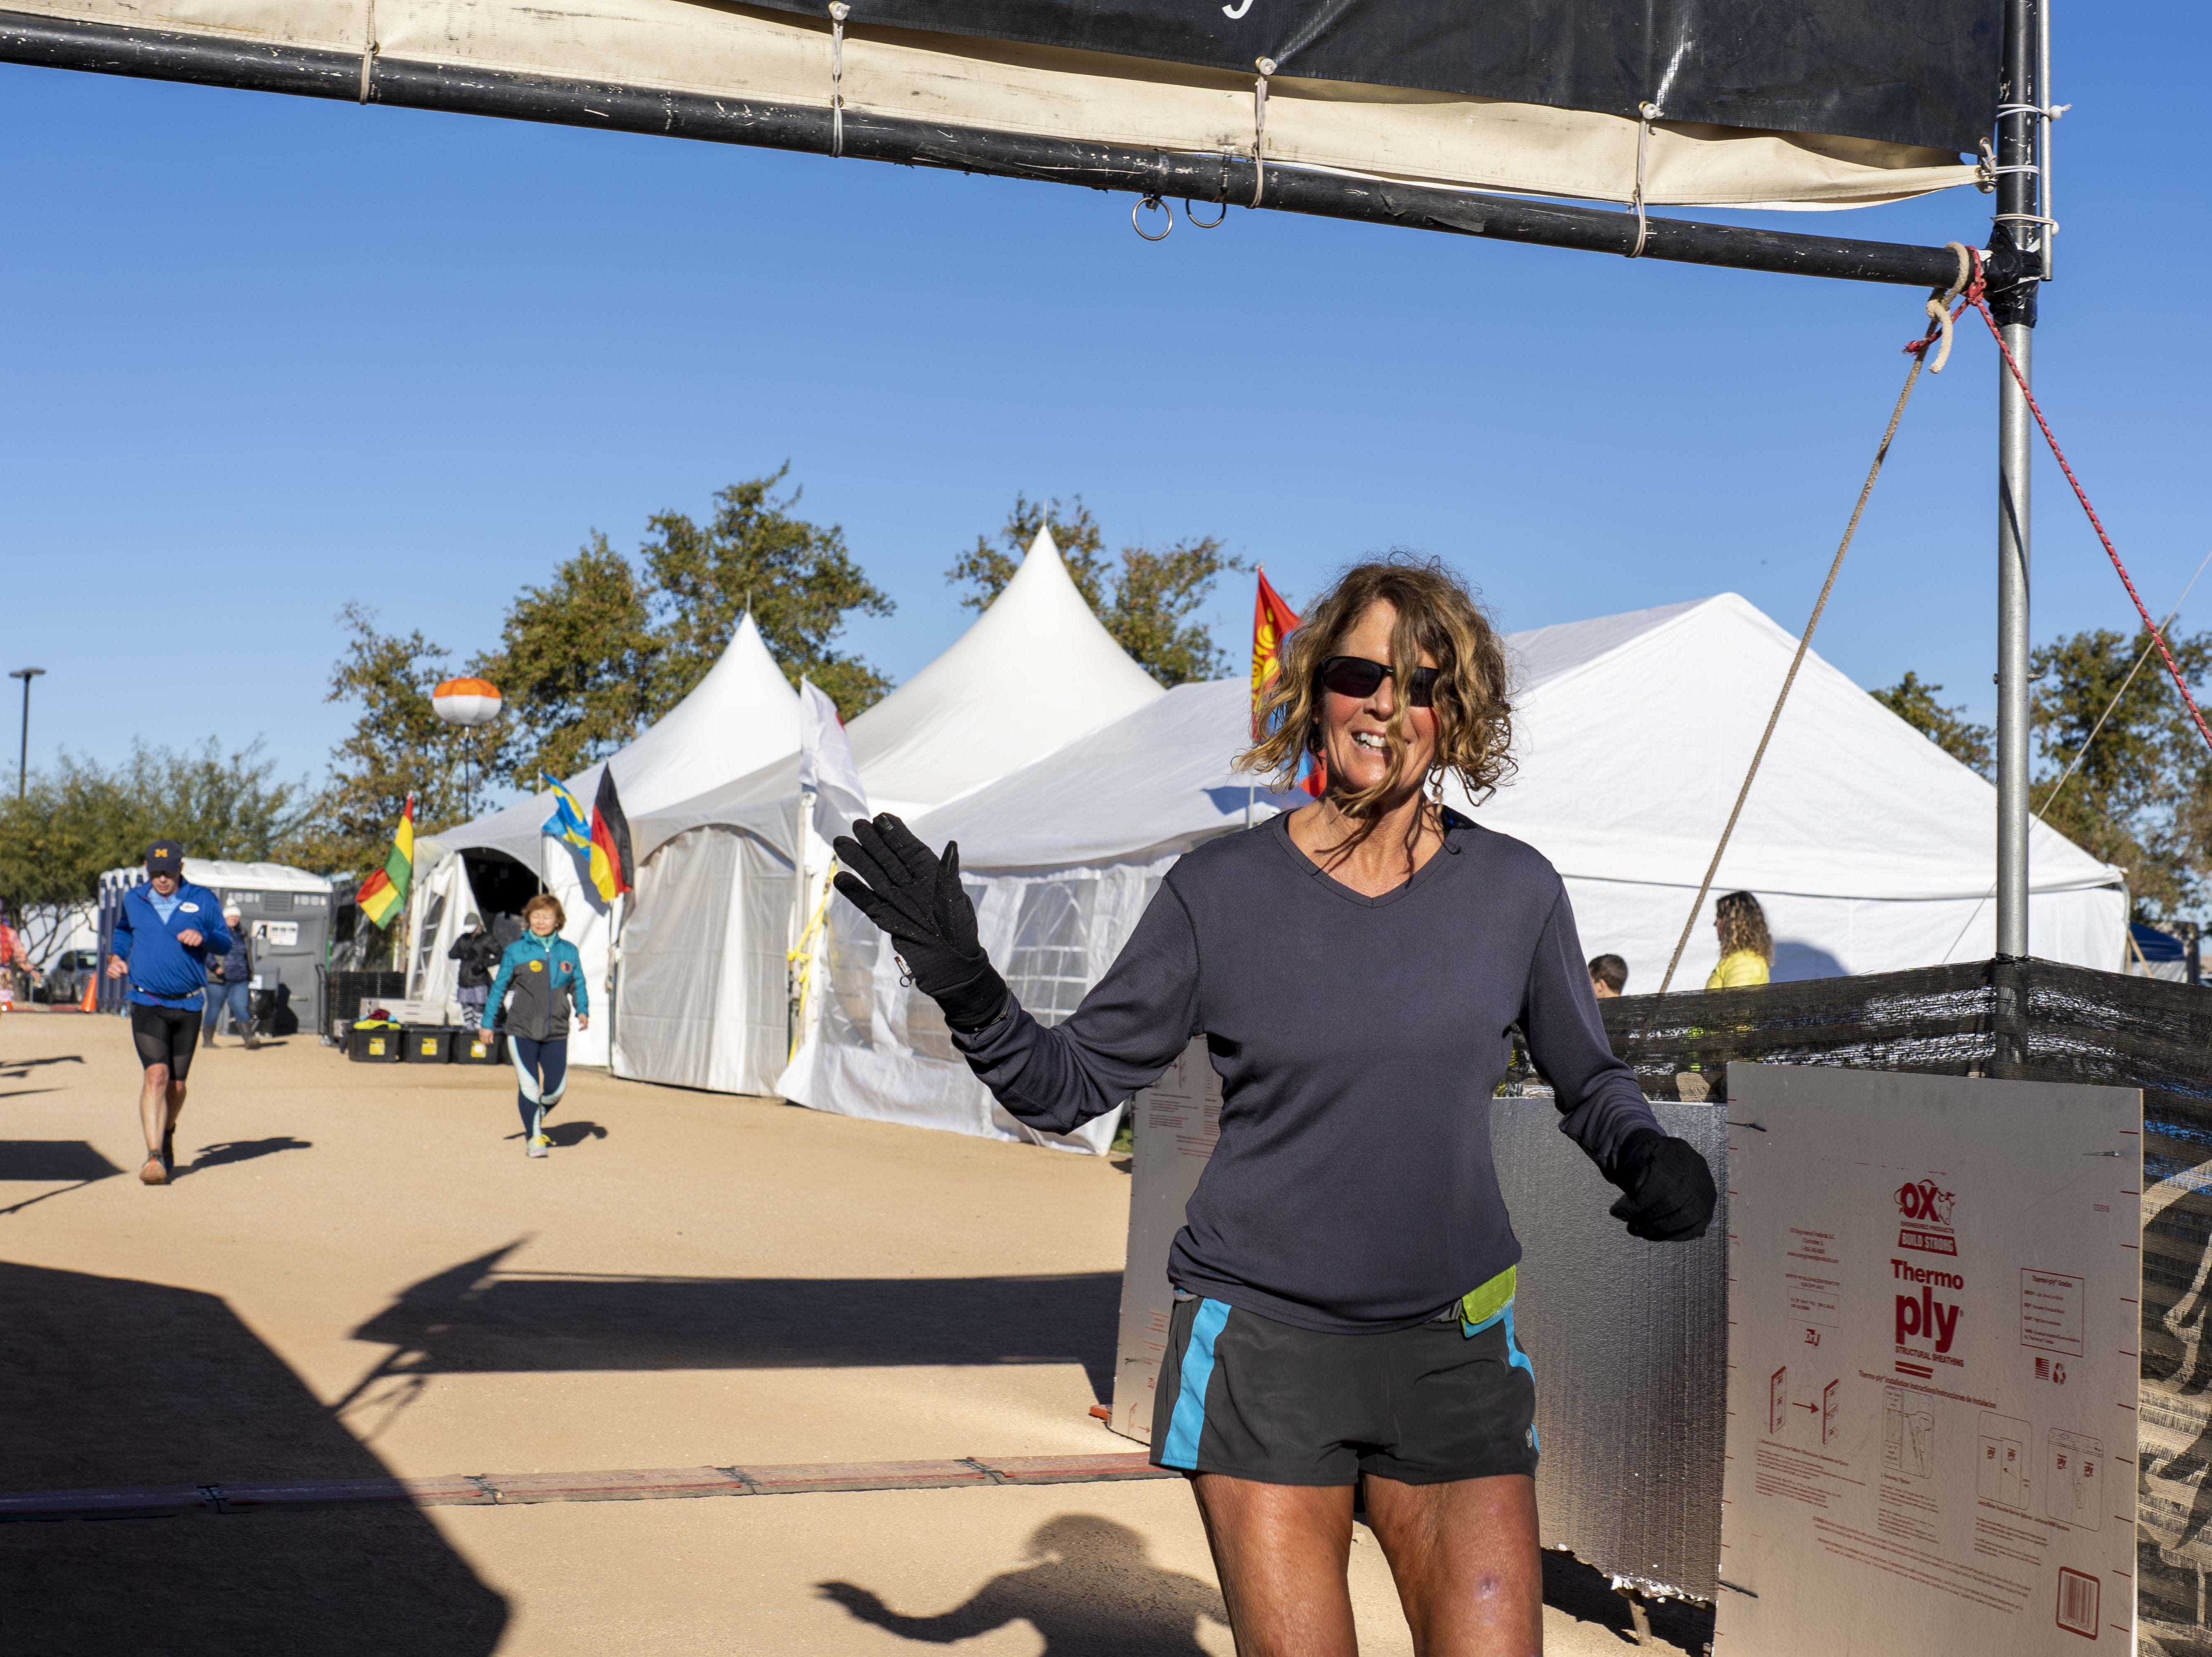 Liz Bauer, 59, of Charleston, South Carolina, takes part in Across the Years, a 6-day race ultra race at Camelback Ranch in Glendale, AZ.